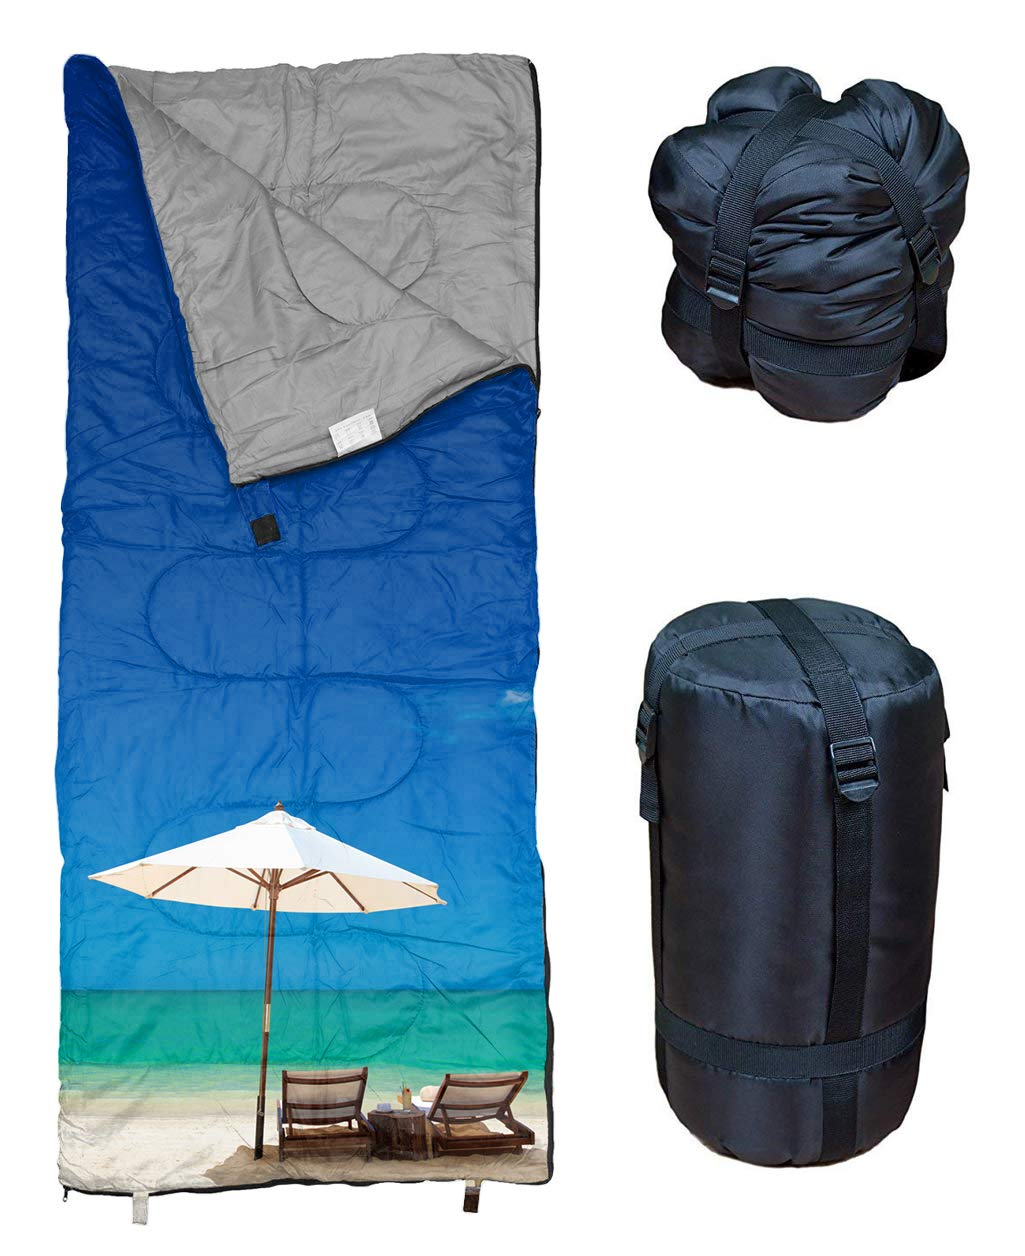 REVALCAMP Lightweight Sleeping Bag - Beach - Indoor & Outdoor use. Great for Kids, Teens & Adults. Ultra Light and Compact Bags are Perfect for Hiking, Backpacking, Camping & Travel. 6